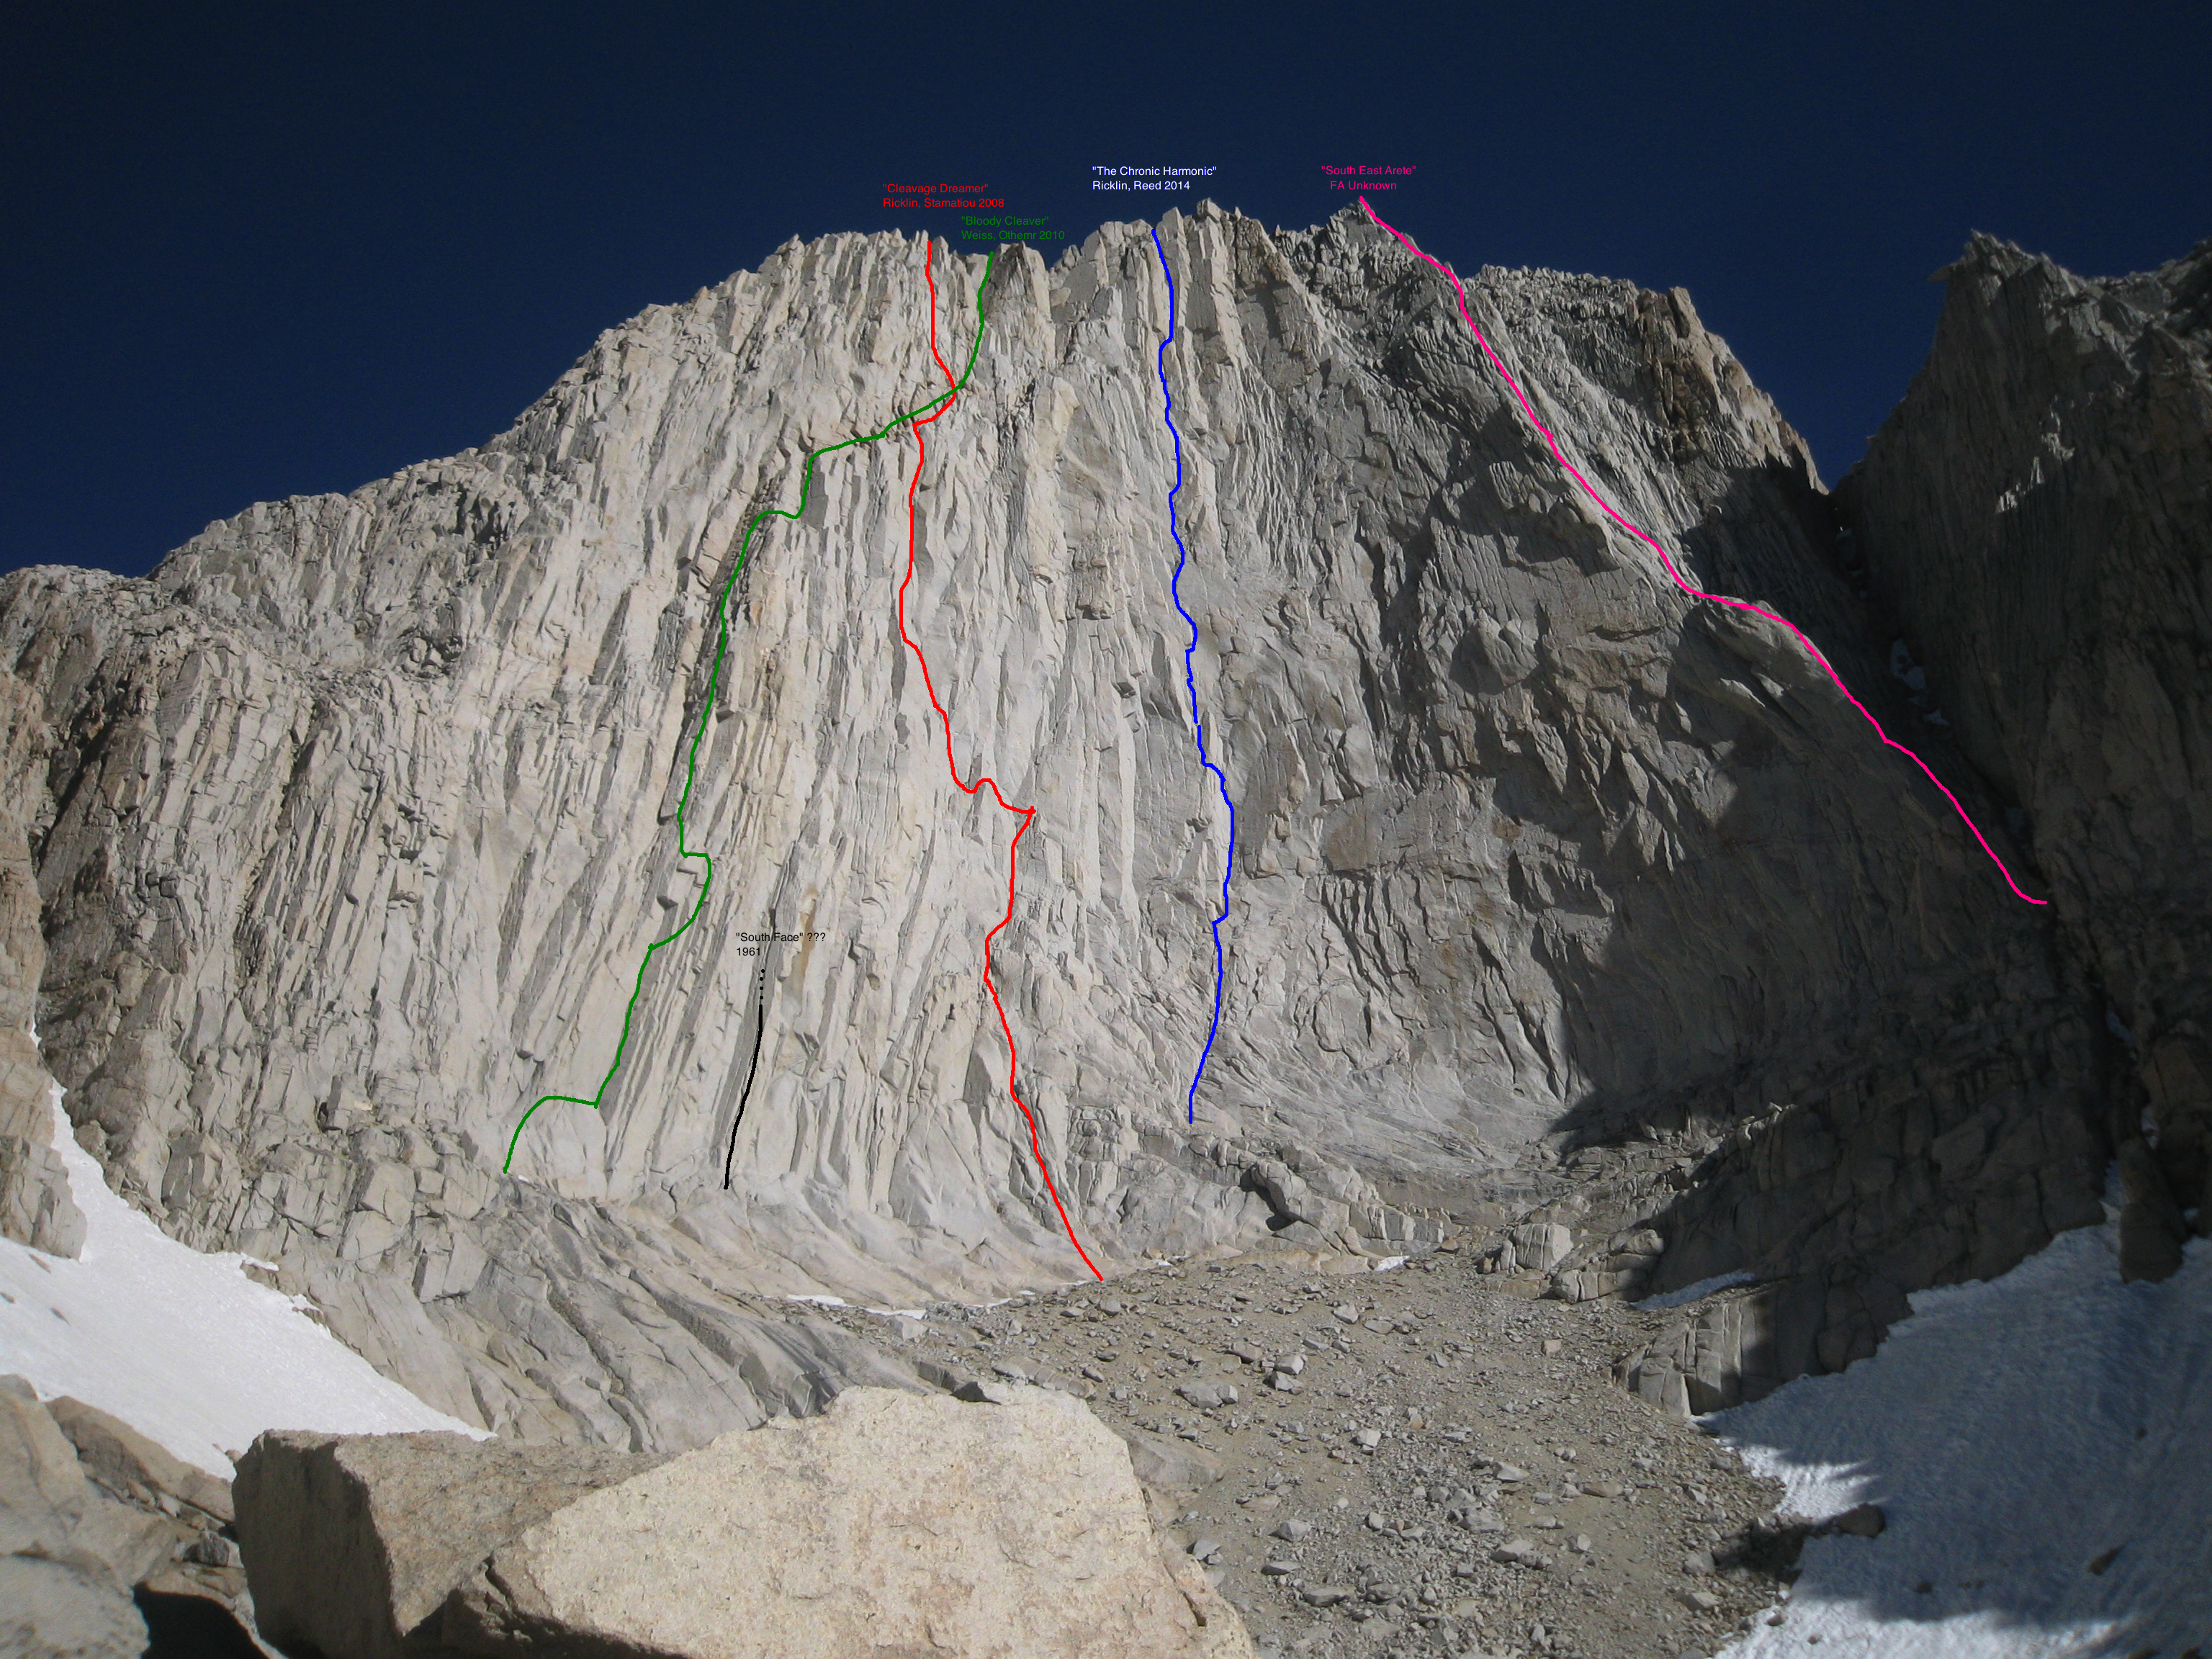 An overview of the south face of the Cleaver. From left to right: Bloody Cleaver (Othemr-Weiss, 2010), South Face (Condon-Killian, 1961; a free ascent of this route was reported in 1980 but may climb variations to the original route), Cleavage Dreamer (Ricklin-Stamatiou, 2008), Chronic Harmonic (Ricklin-Reed, 2014), Southeast Arete (FA Unknwon).